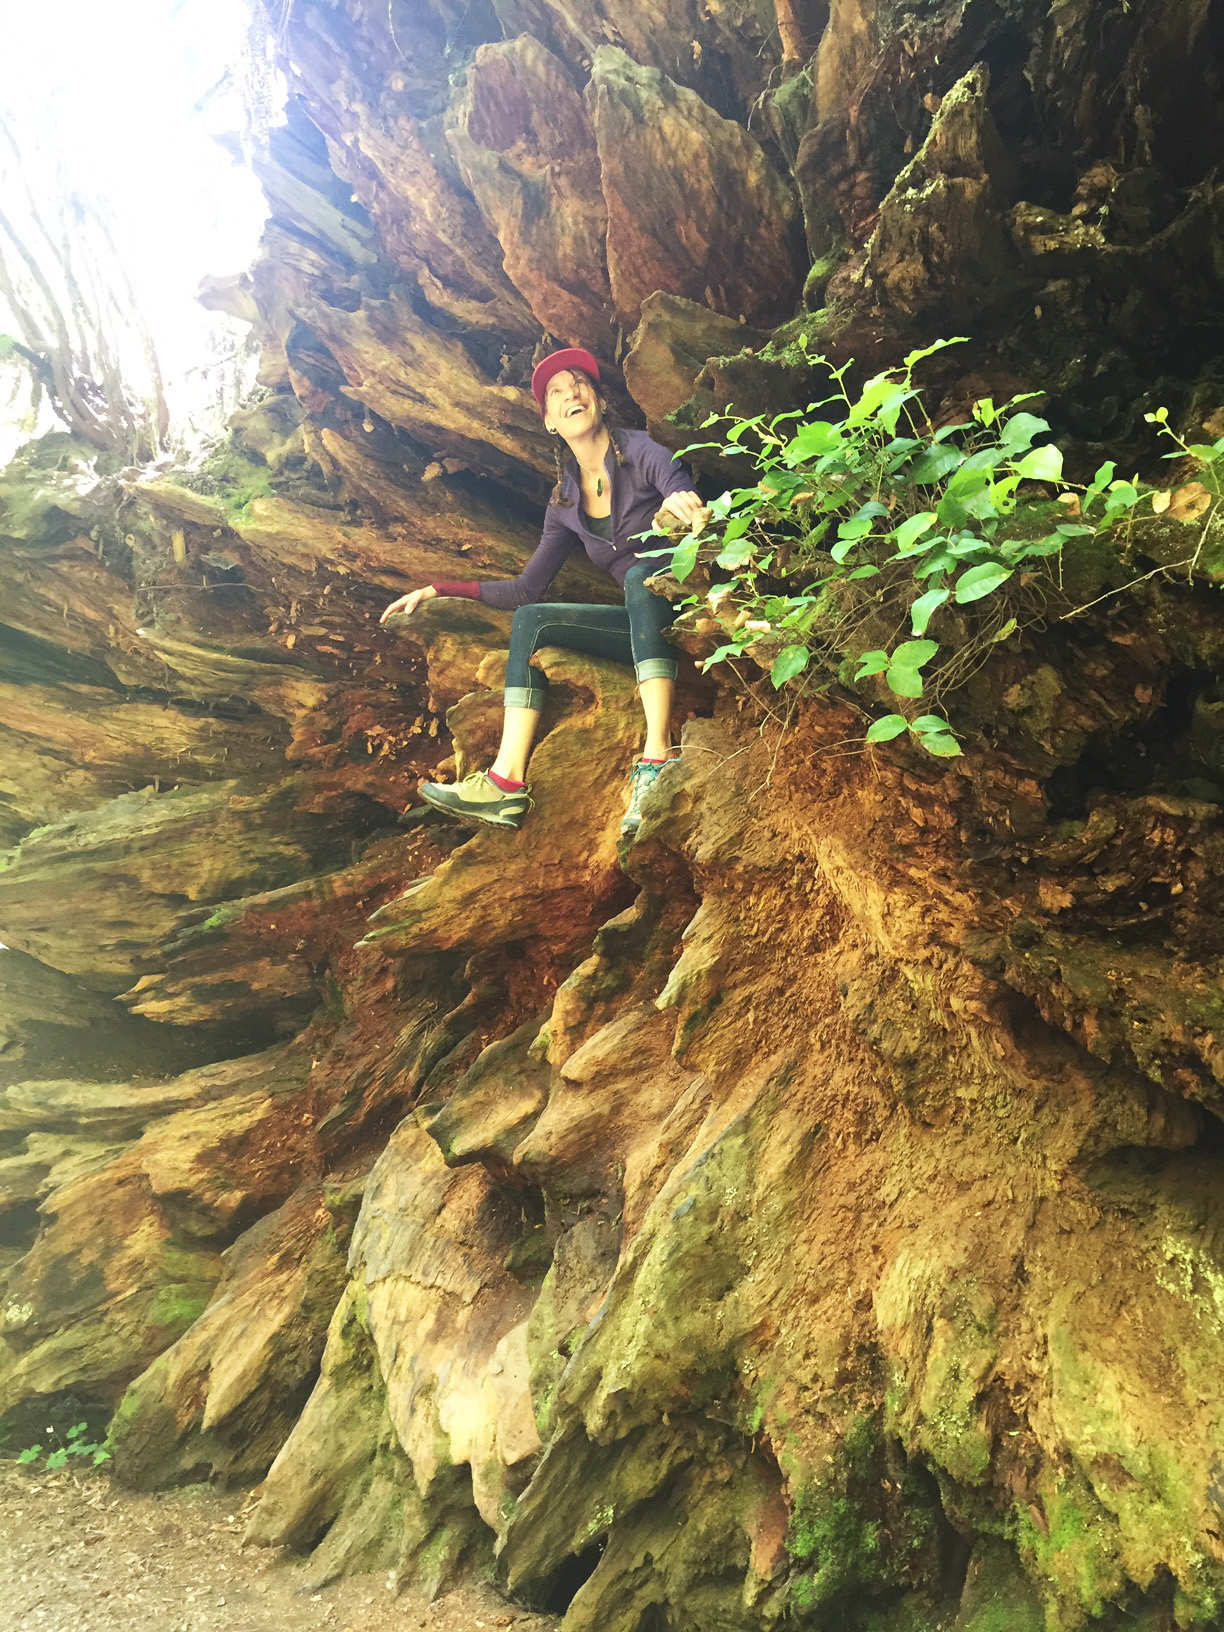 A woman sits on the root ball of a giant tree.